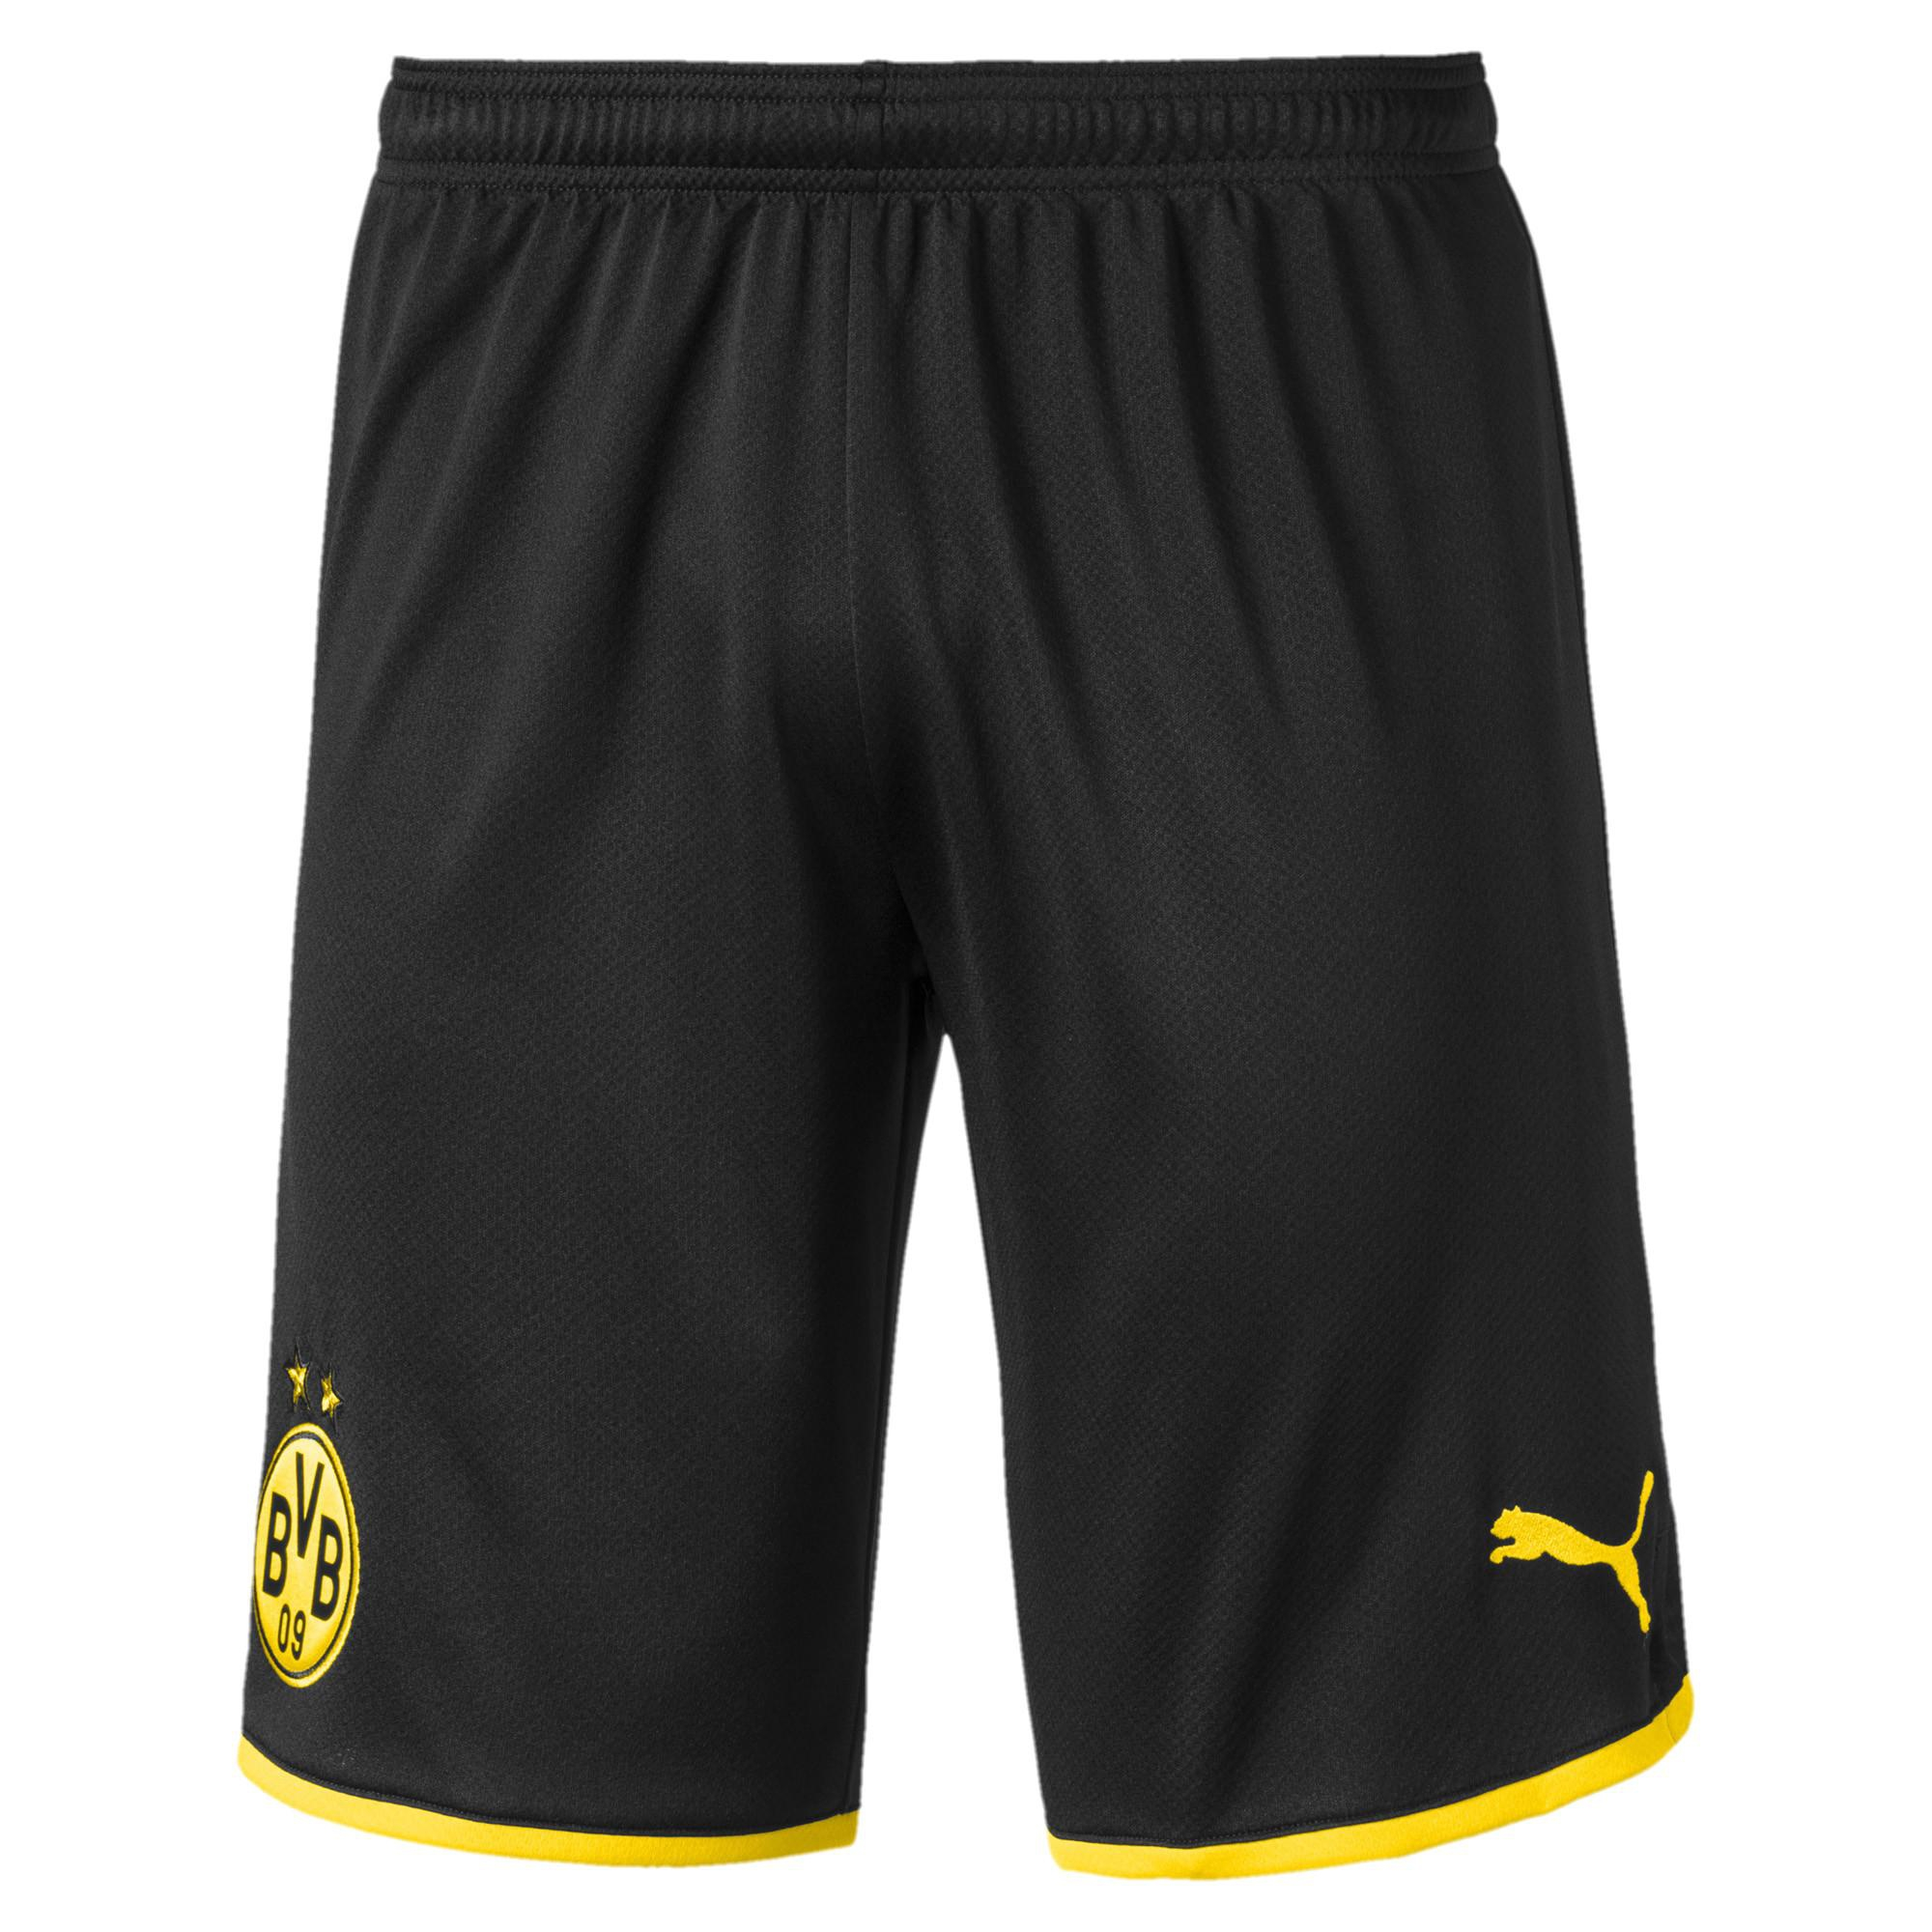 Image of   Dortmund home shorts 2019/20 - youth-128